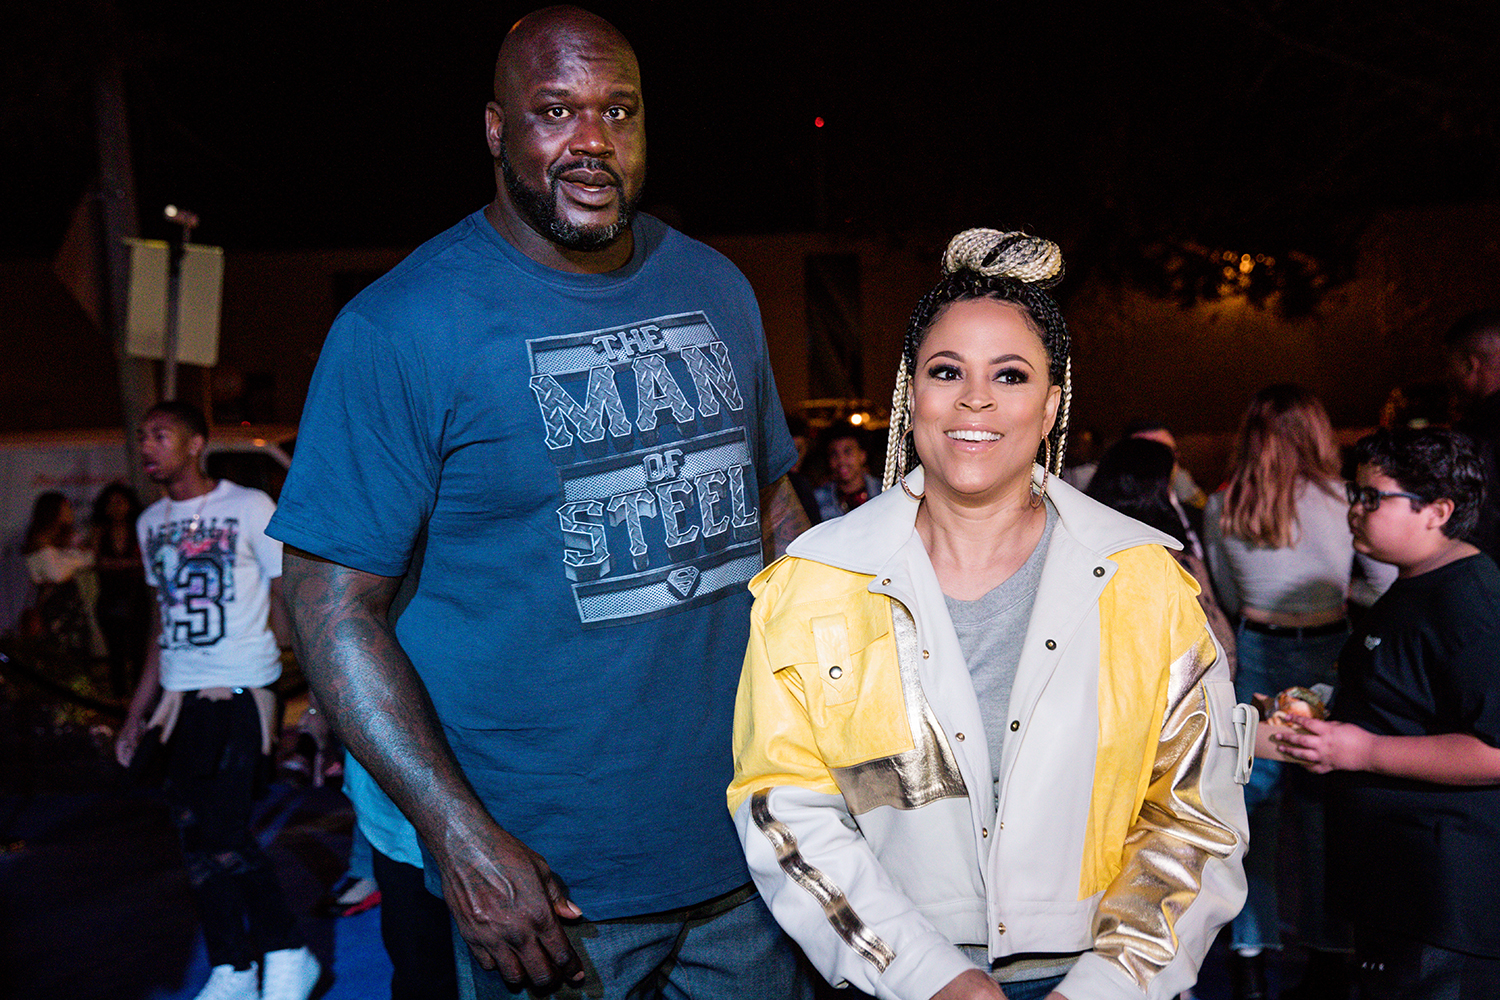 Shaunie O'Neal and Shaquille O'Neal